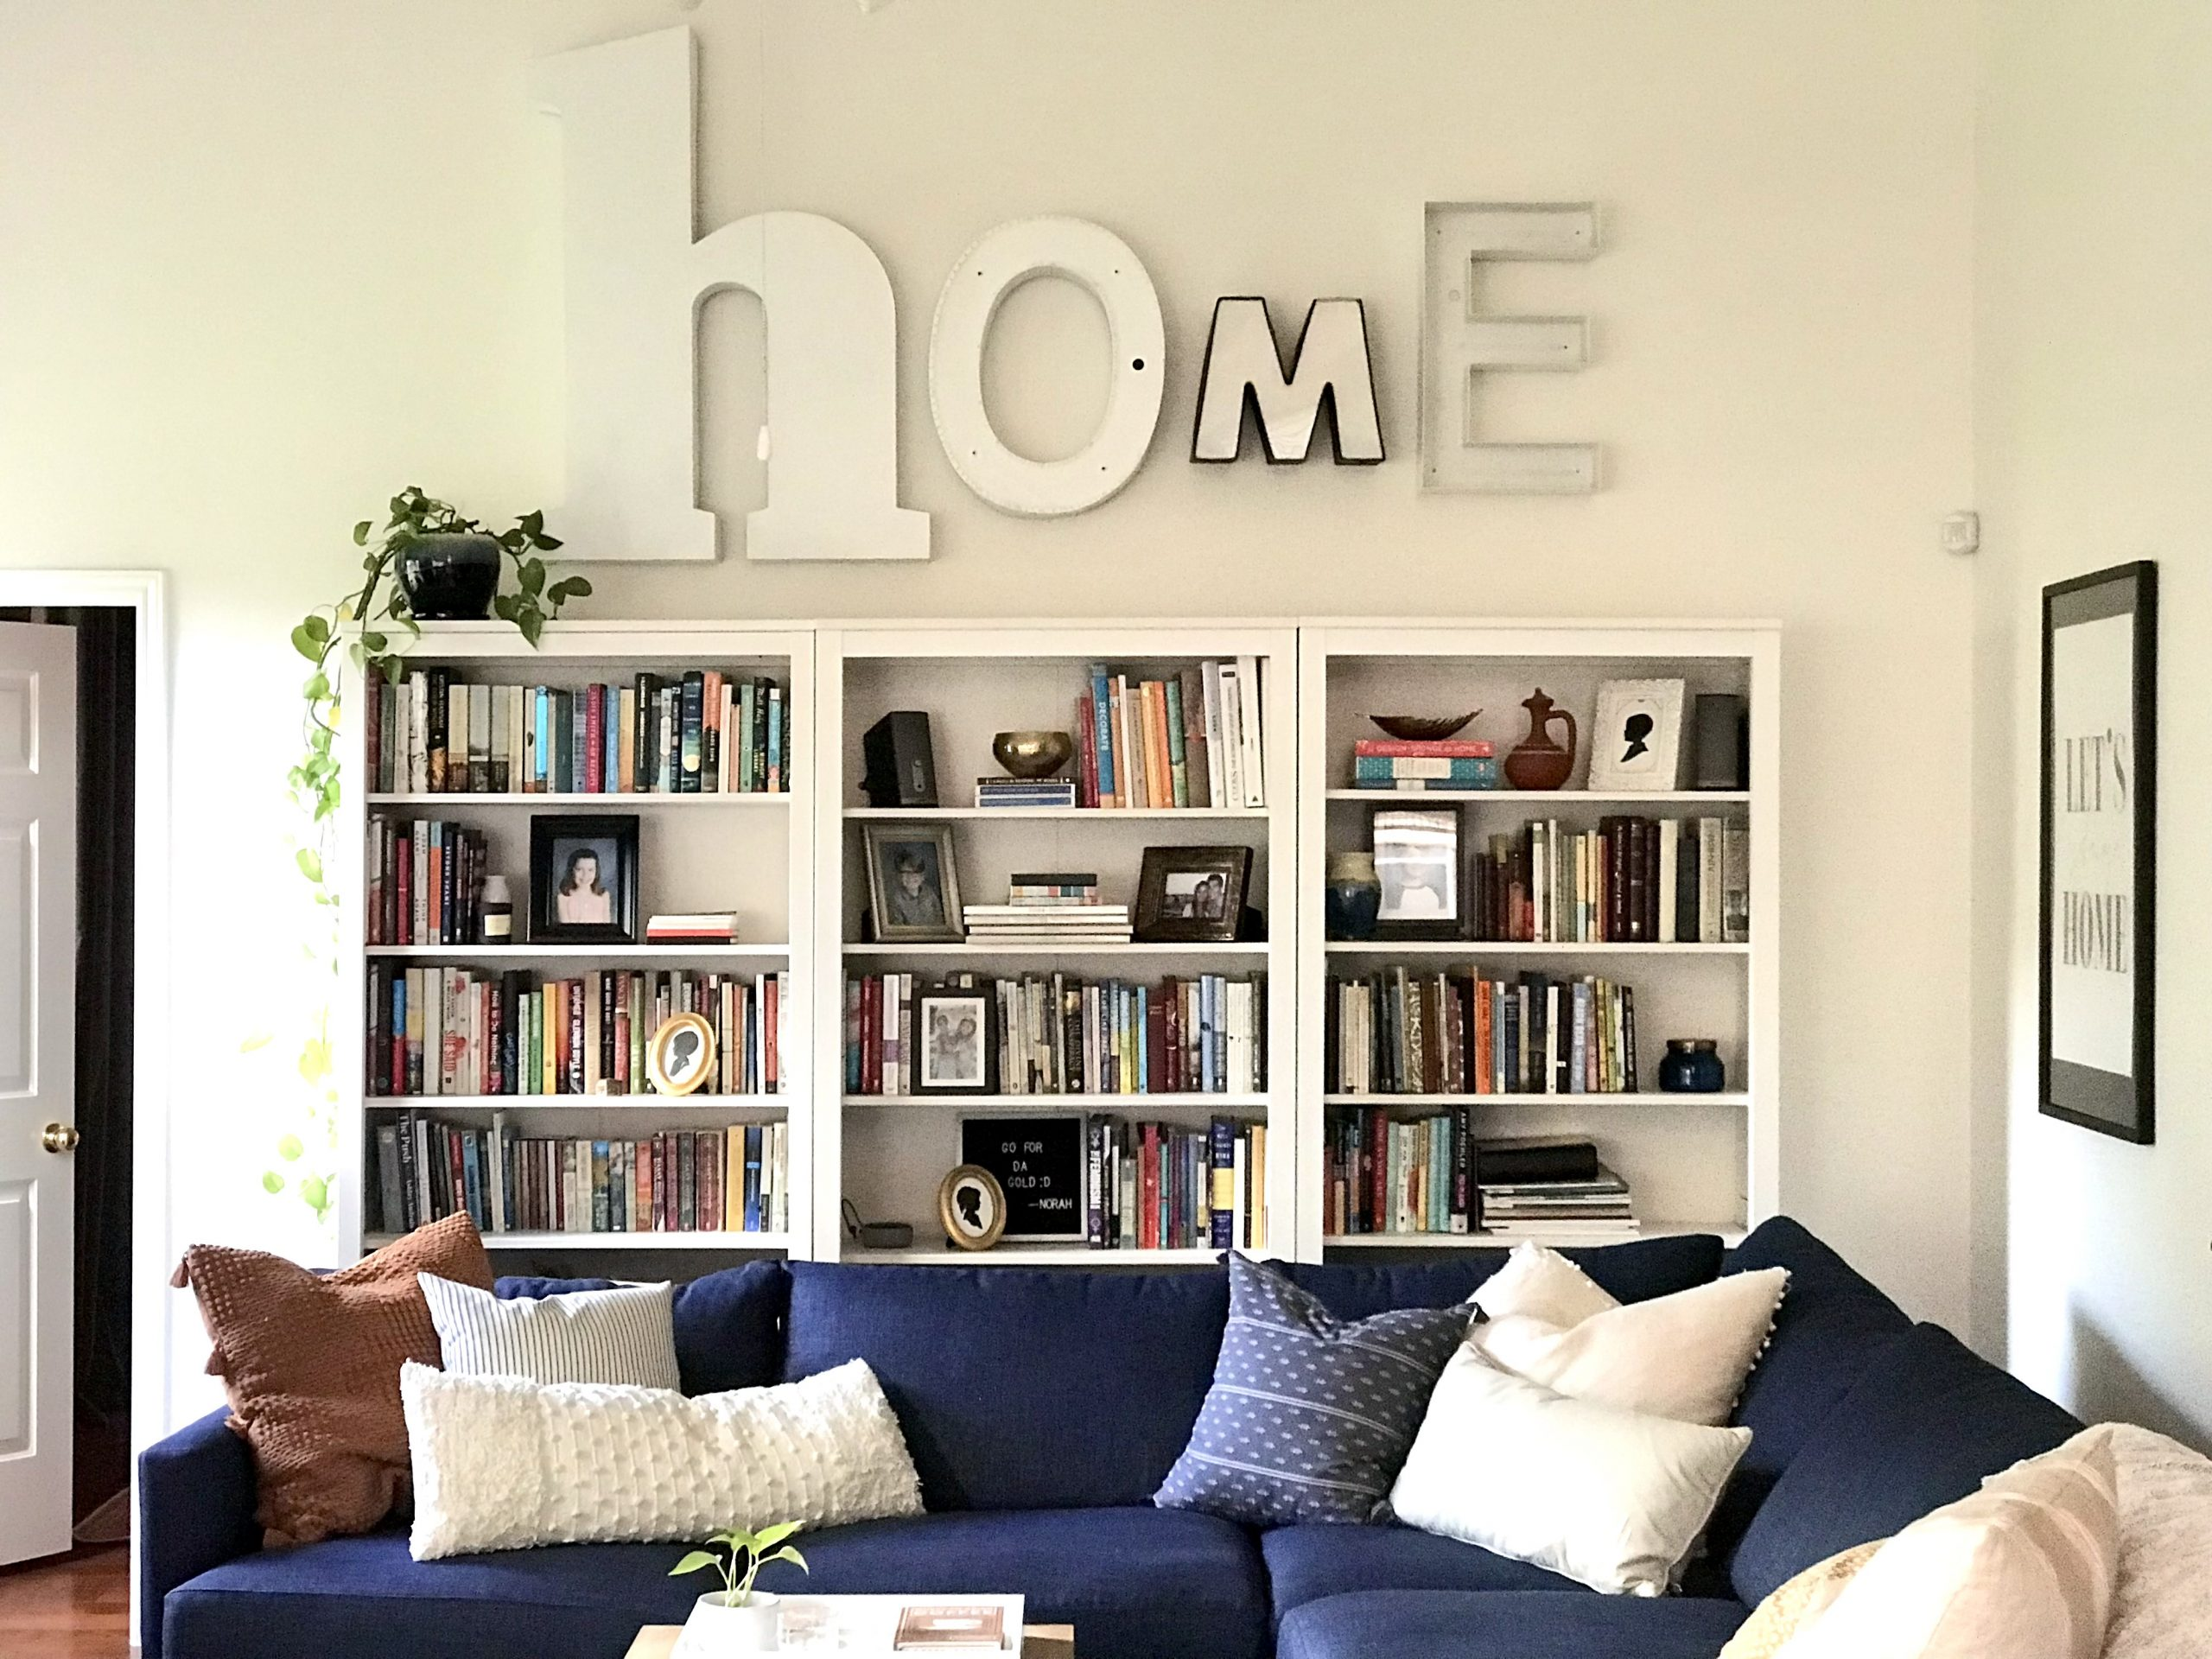 Simple Fall Decorating: Embracing It, Not Faking It